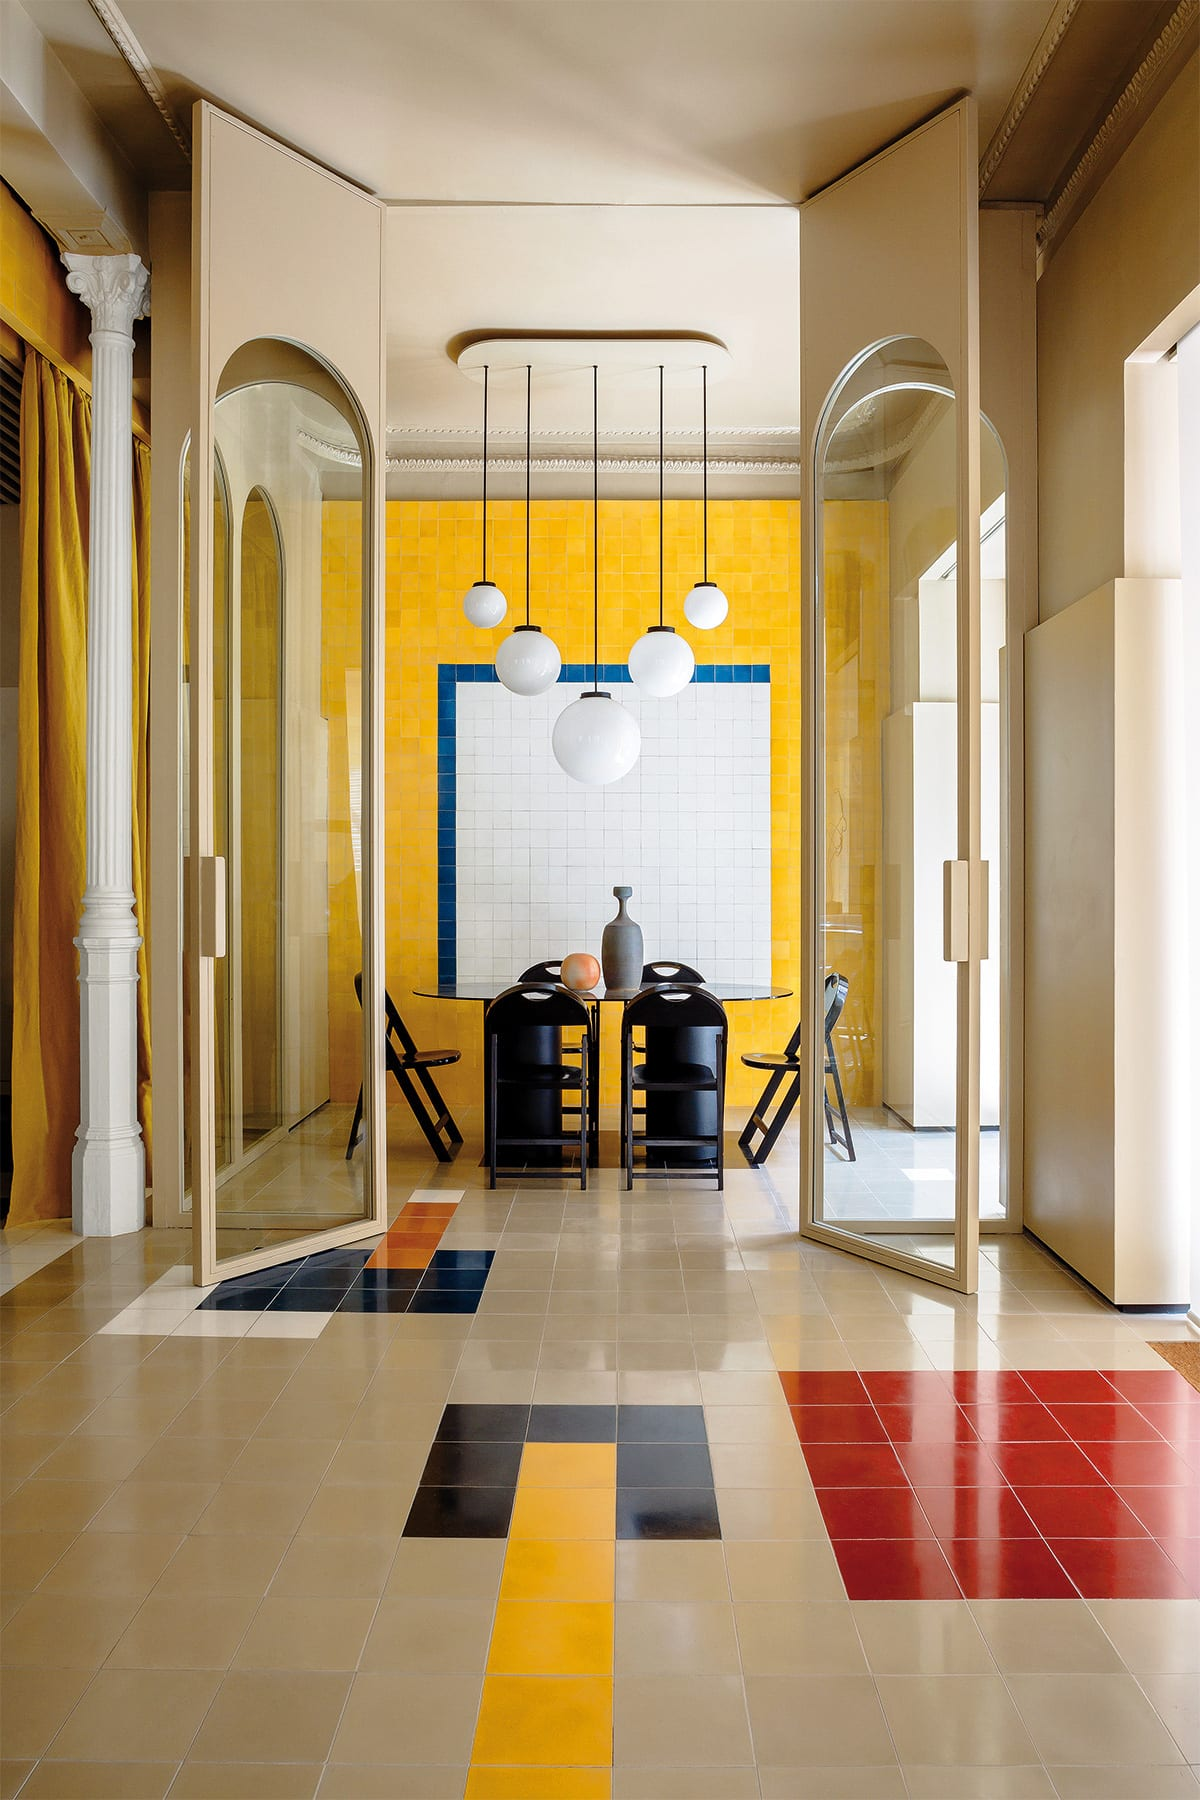 Casa josephine 39 s fitout for madrid advertising agency is fresh af - Casa josephine ...